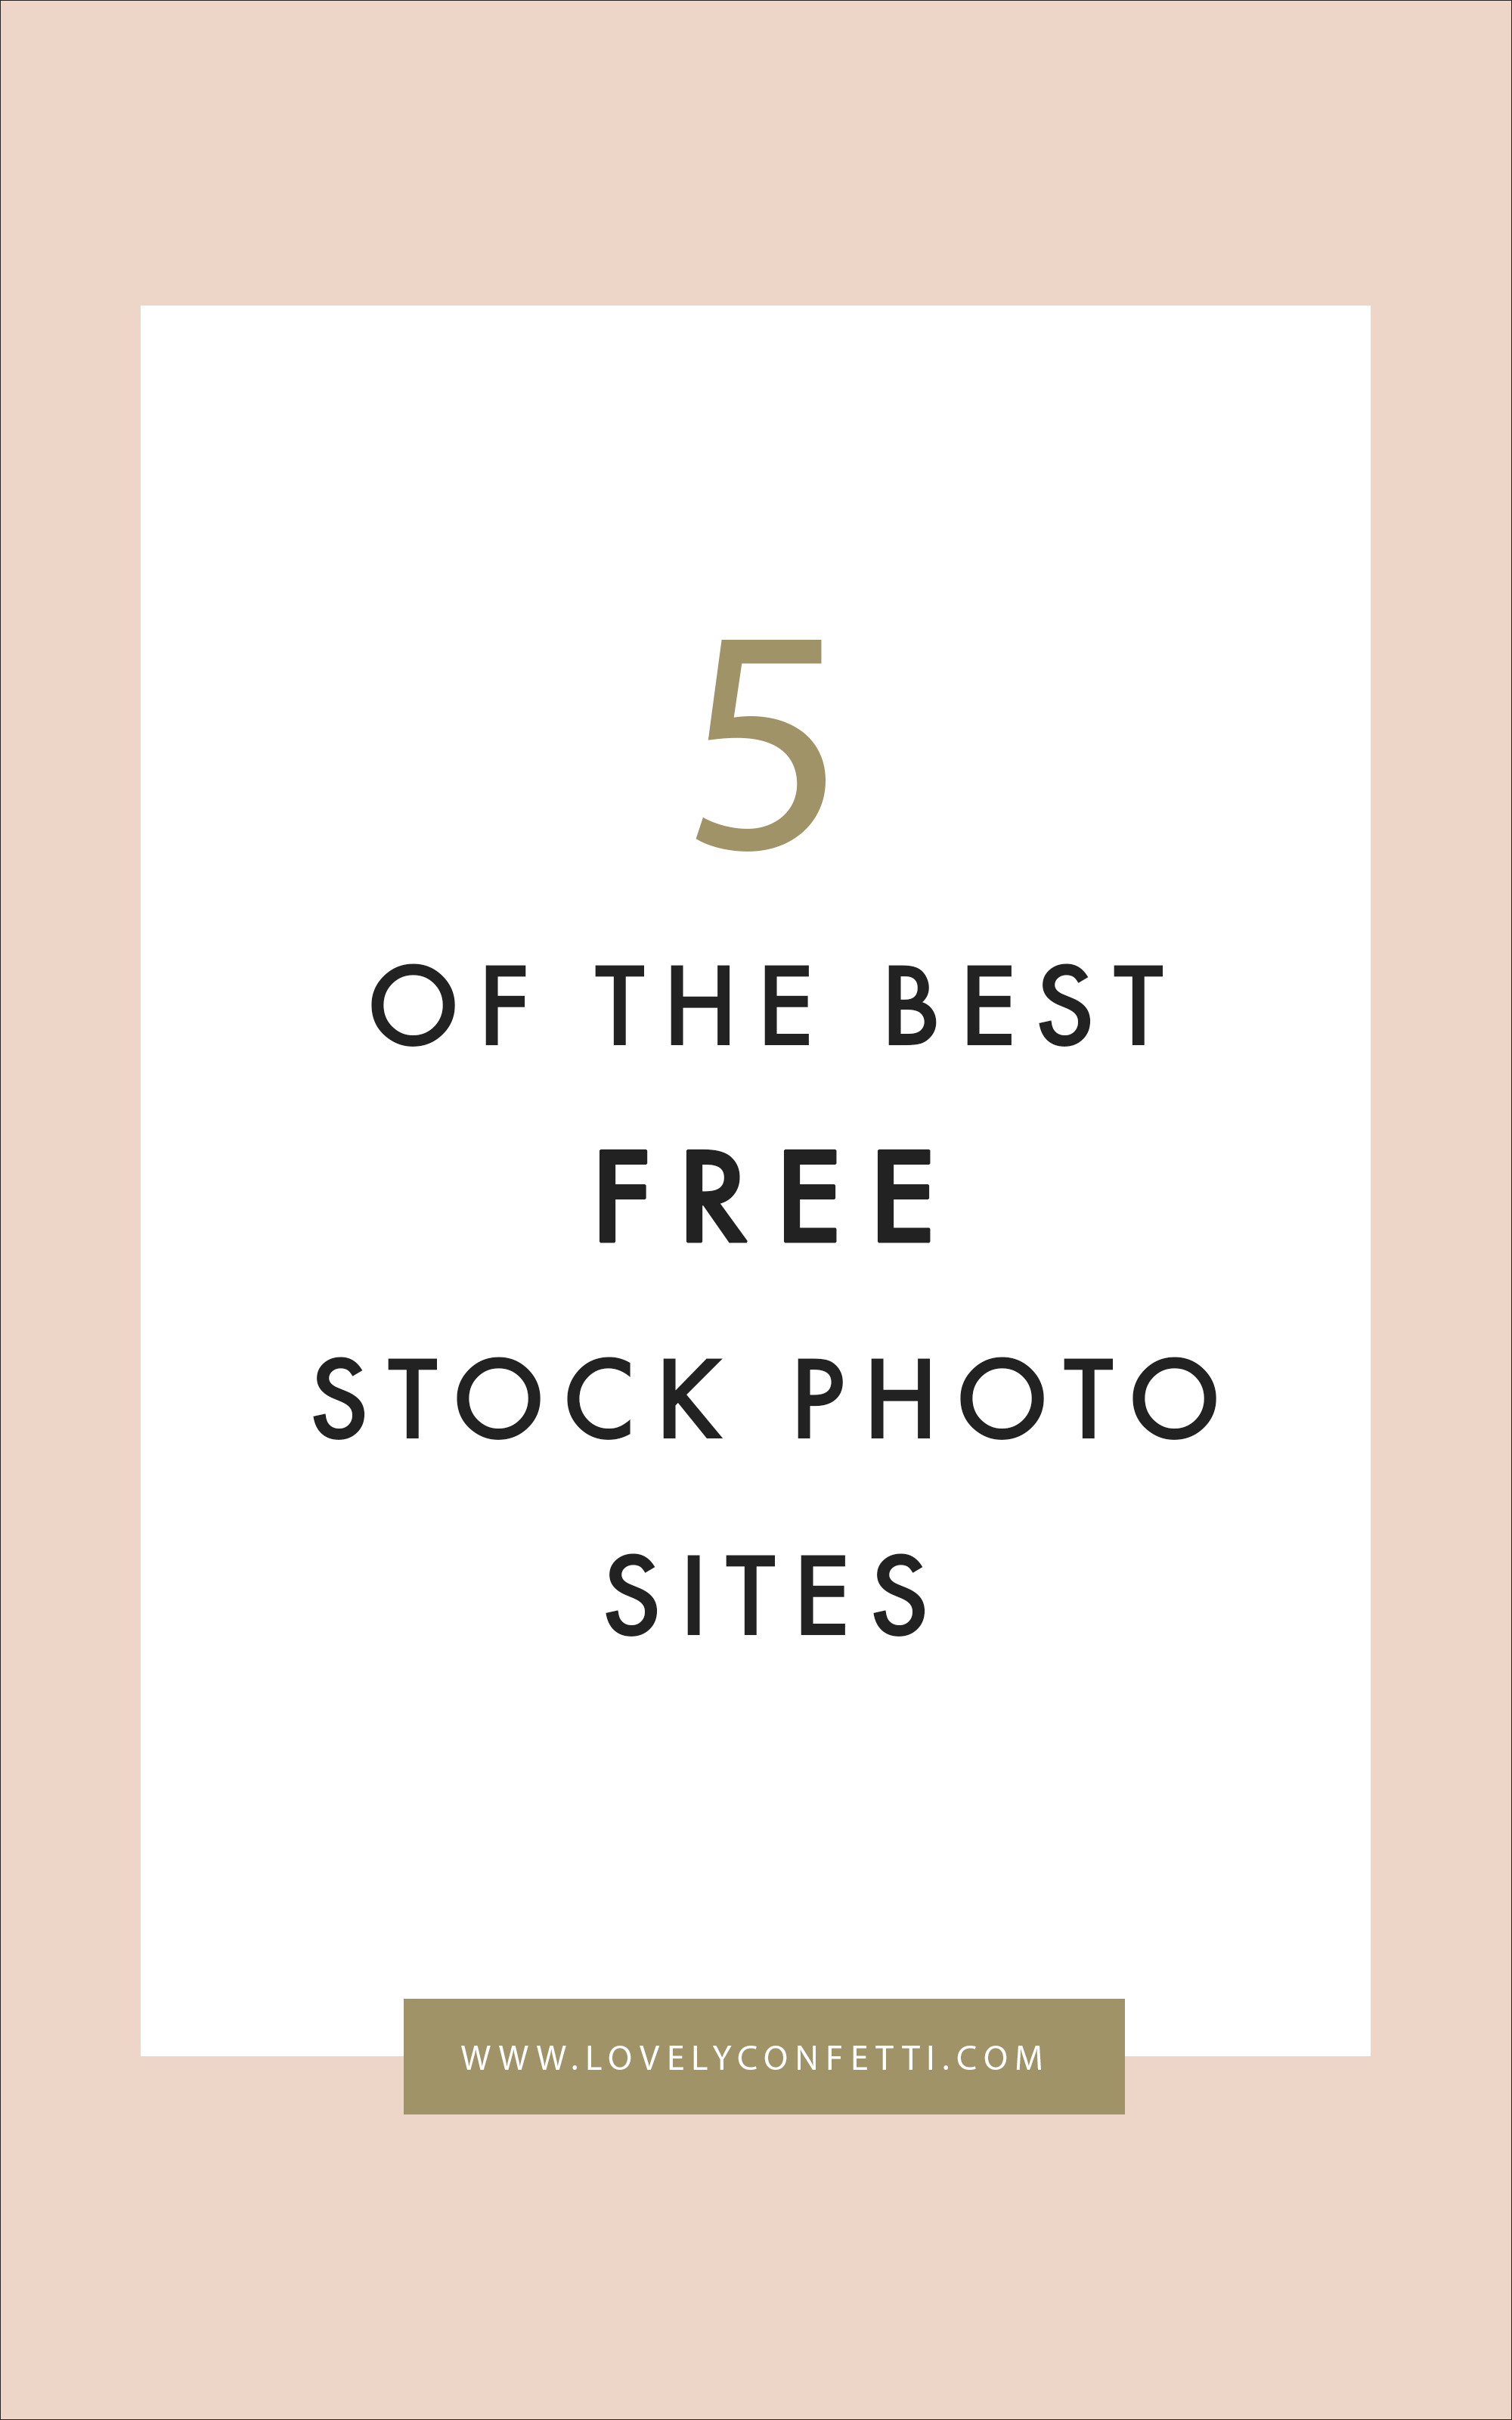 5 of the best free stock photo sites